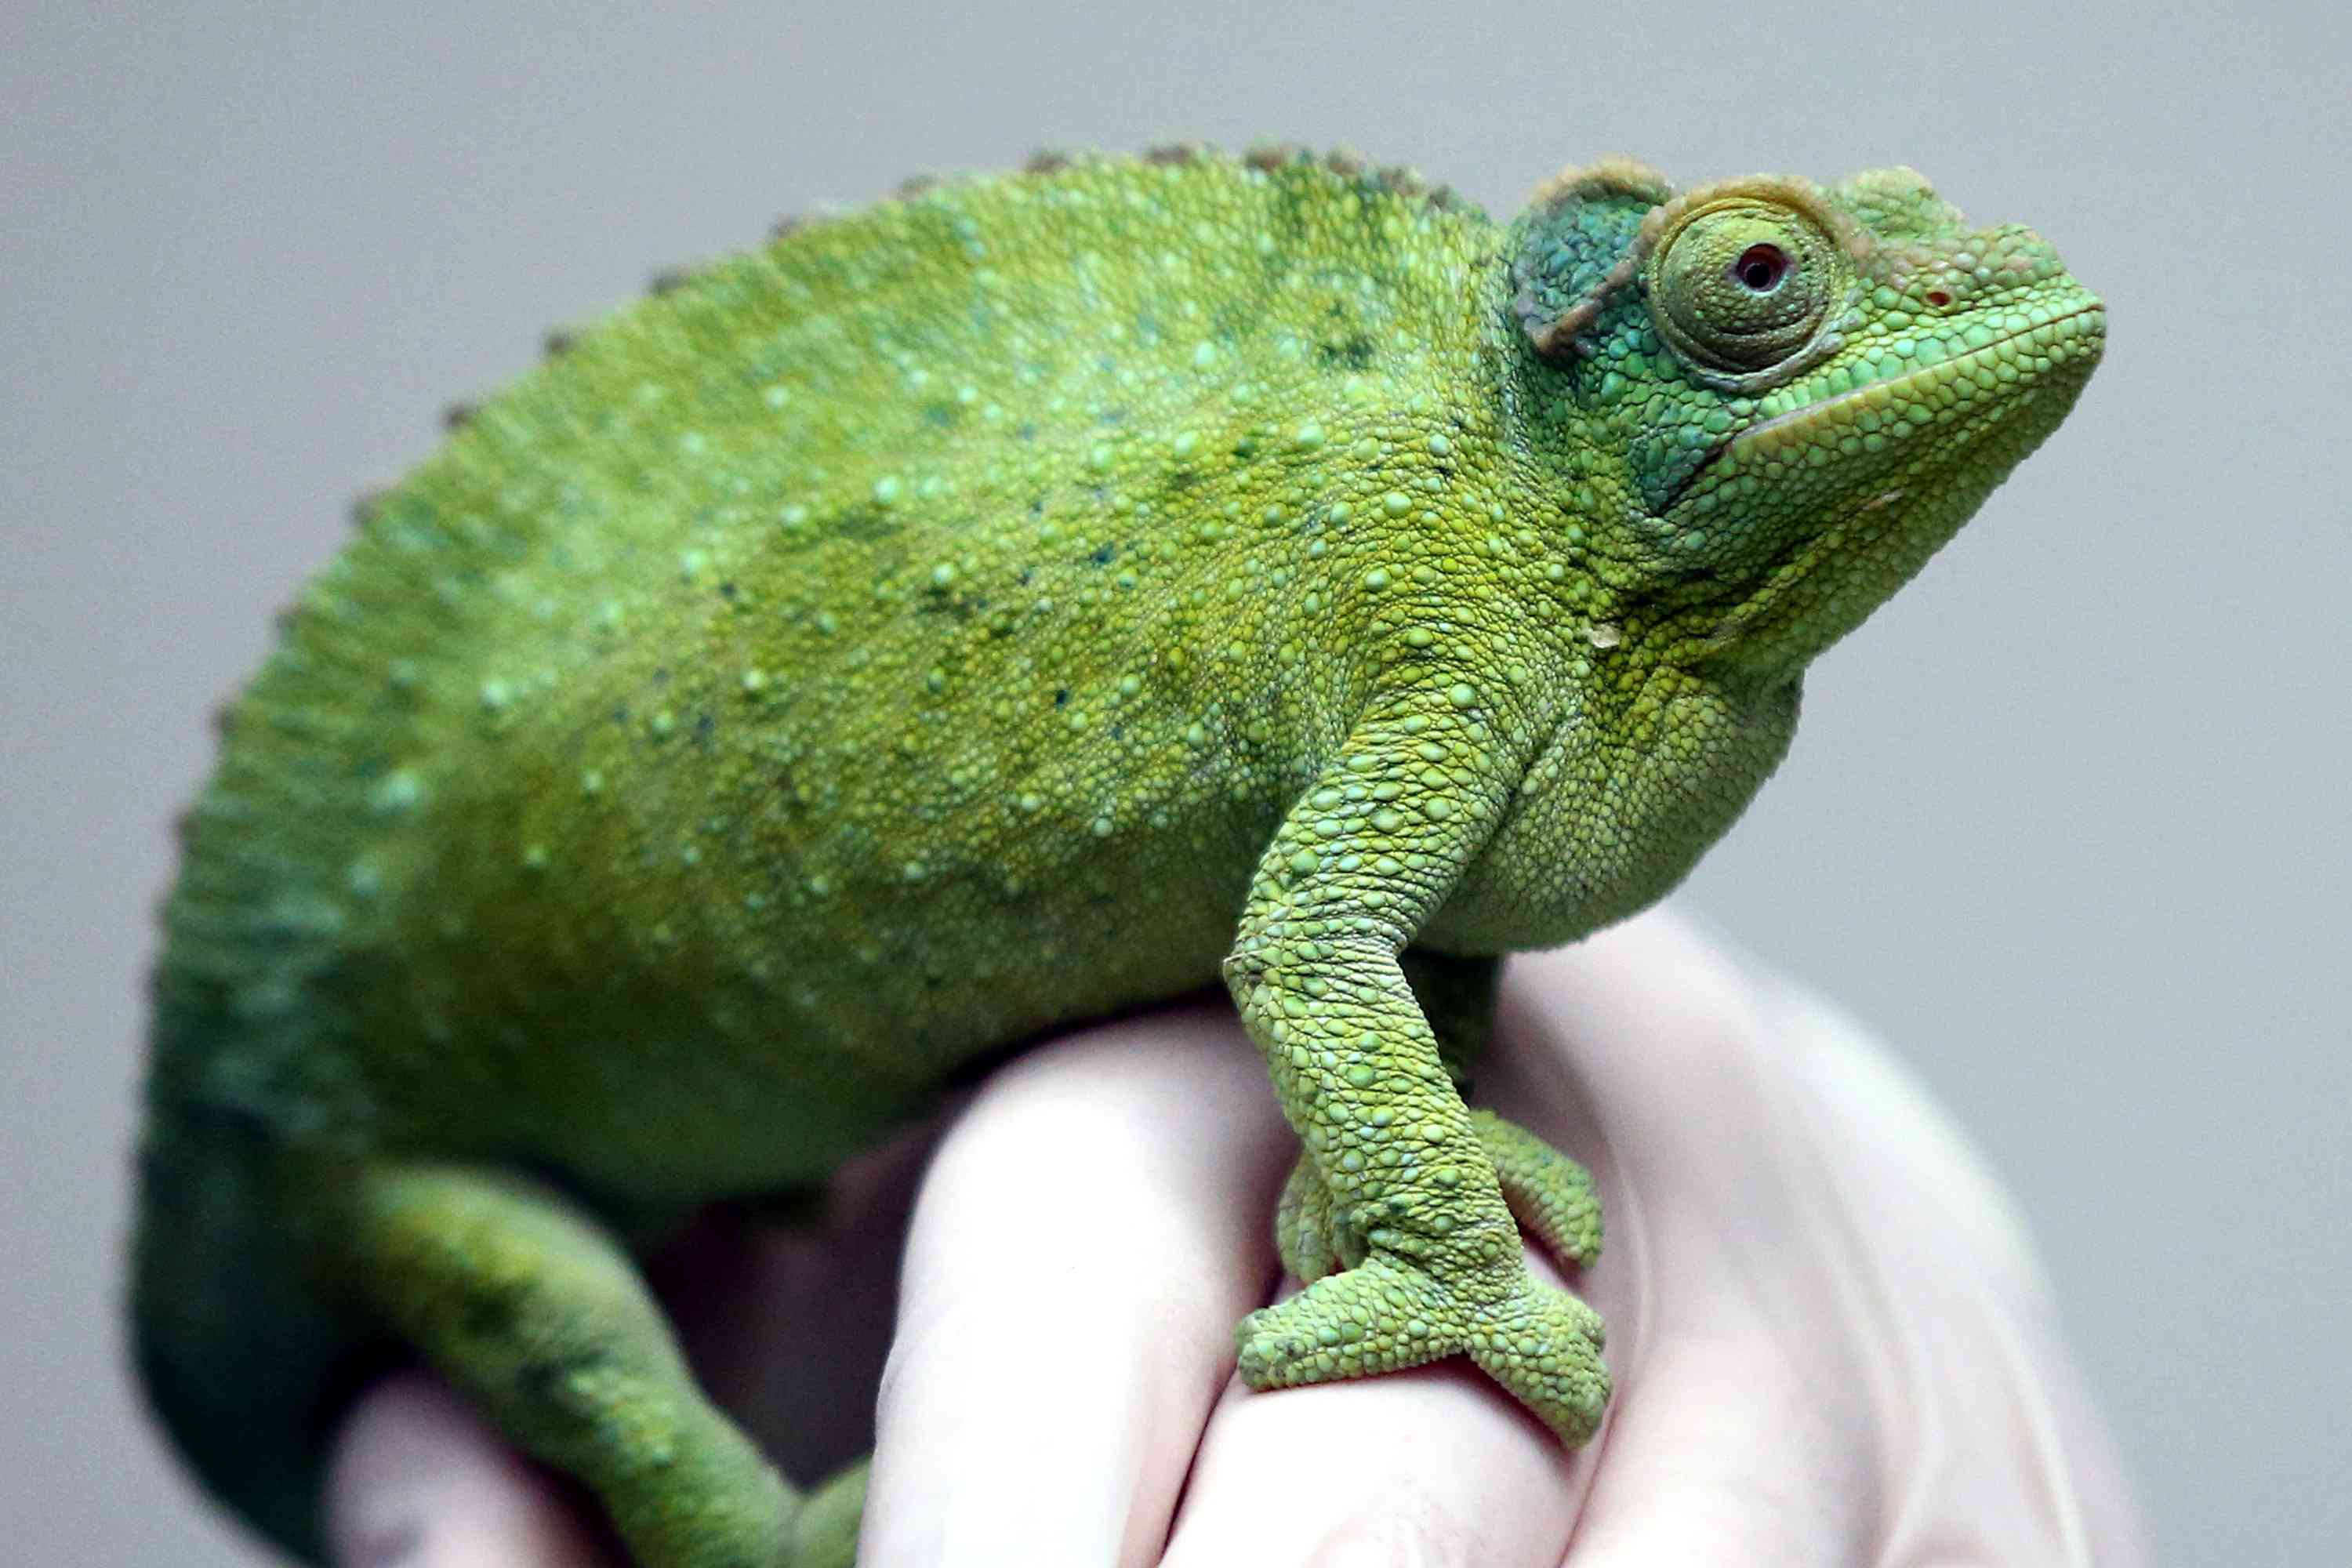 A Jackson's chameleon handled by a zookeeper in London